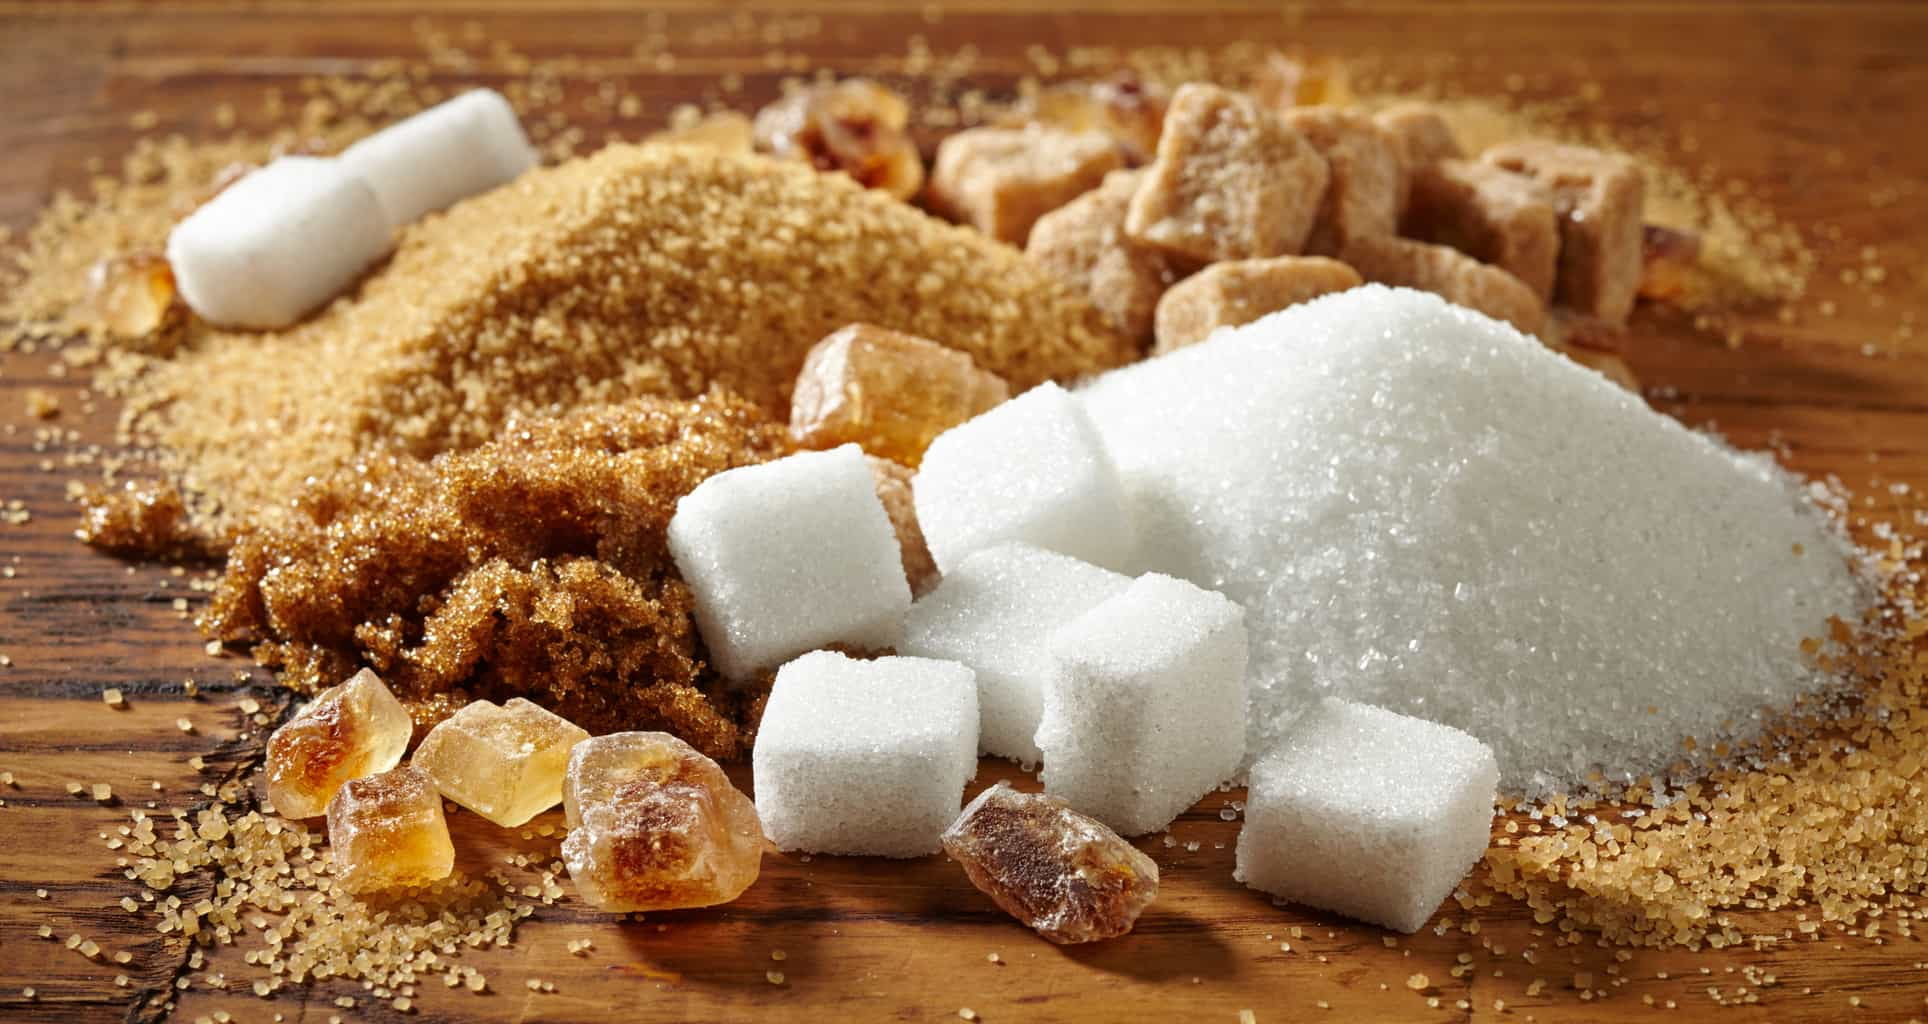 Can sugar really heal wounds and ulcers?